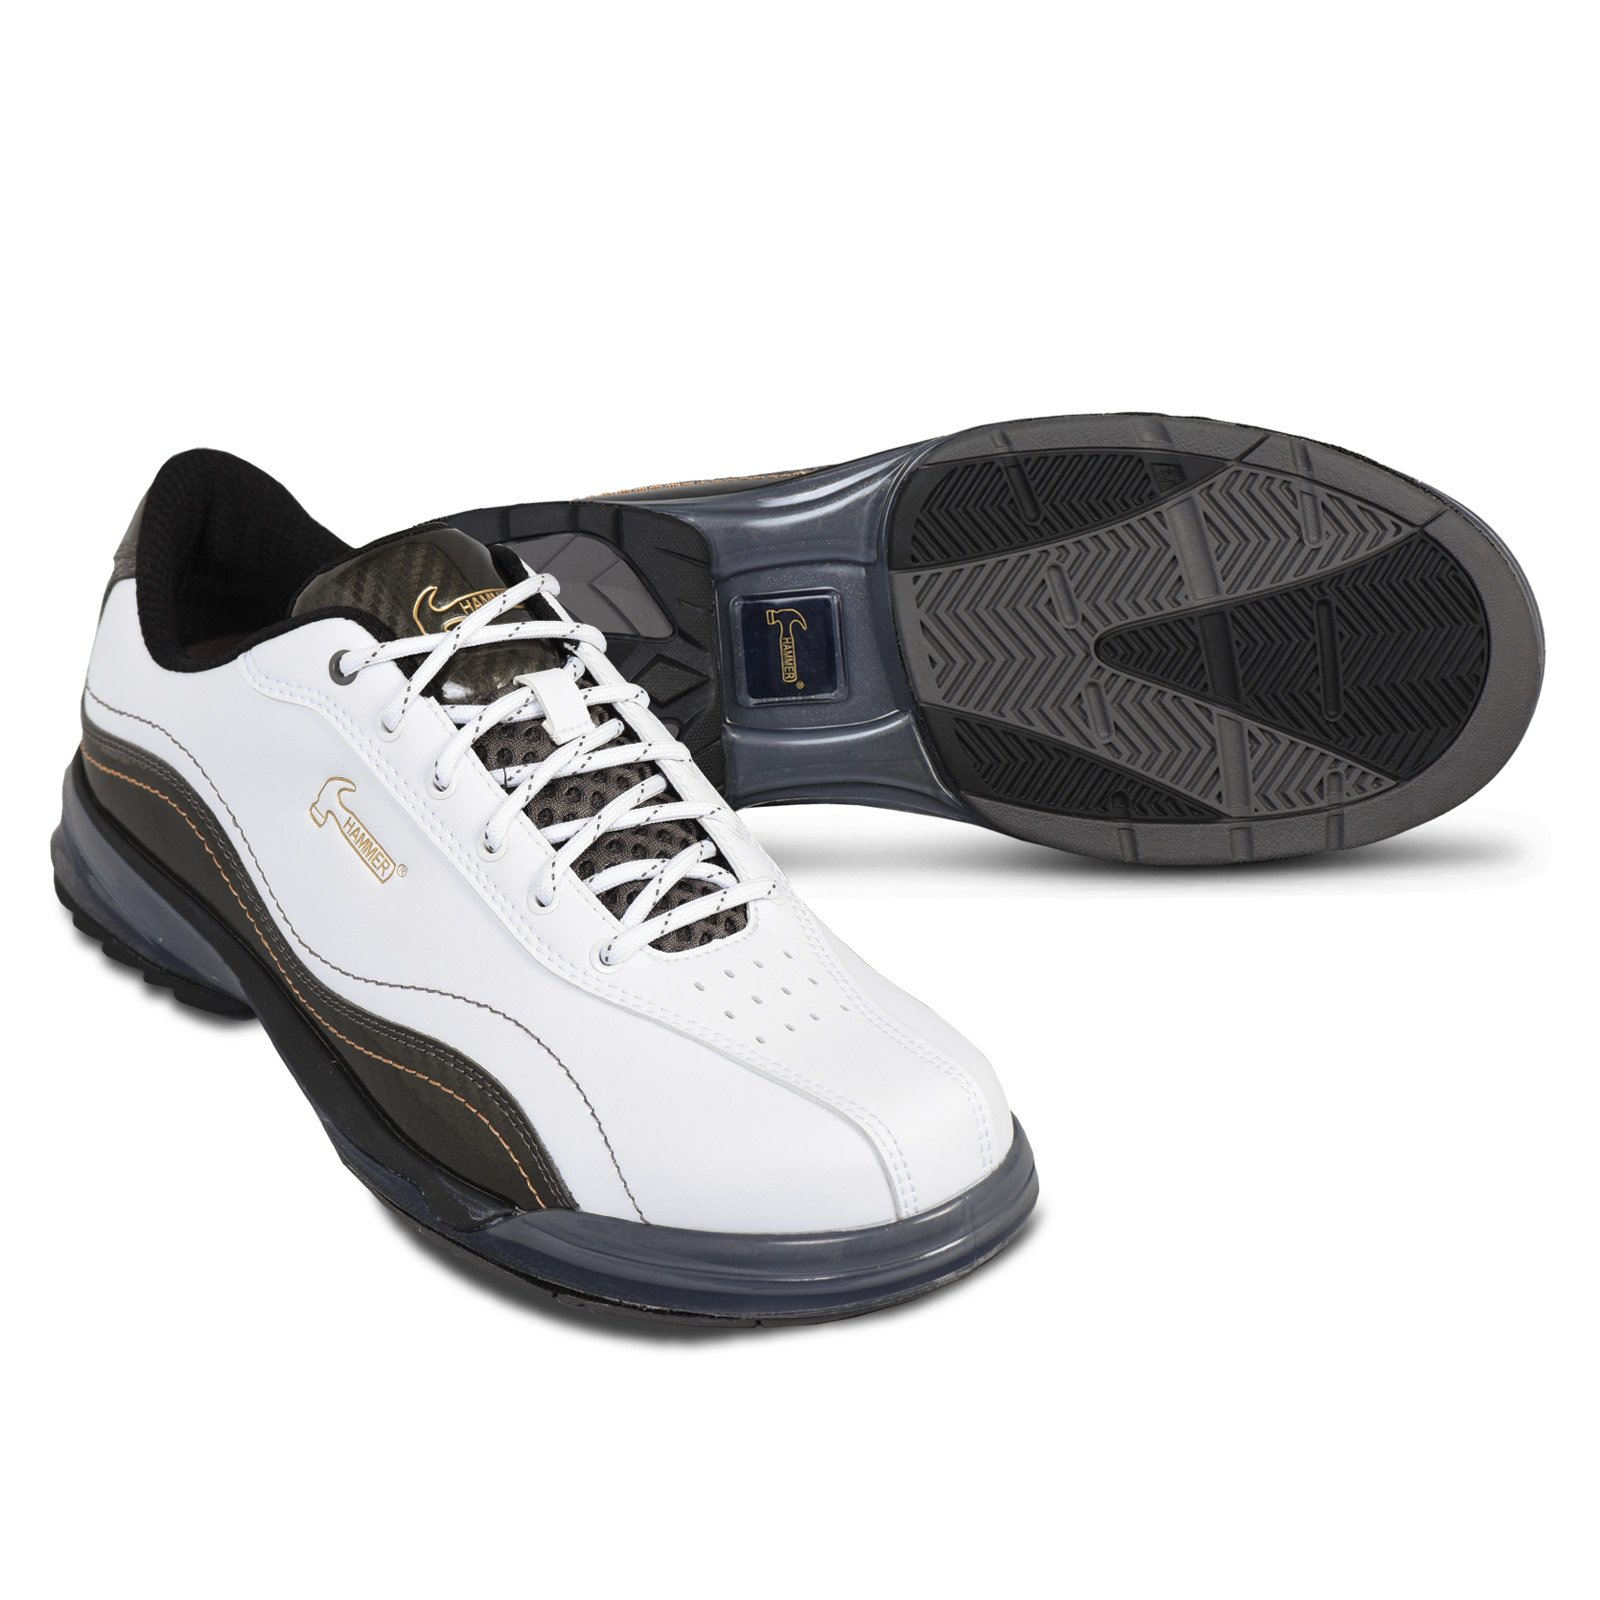 KR Strikeforce Men's Hammer Performance Bowling Shoes, White/Carbon, Size 11.5 by KR Strikeforce